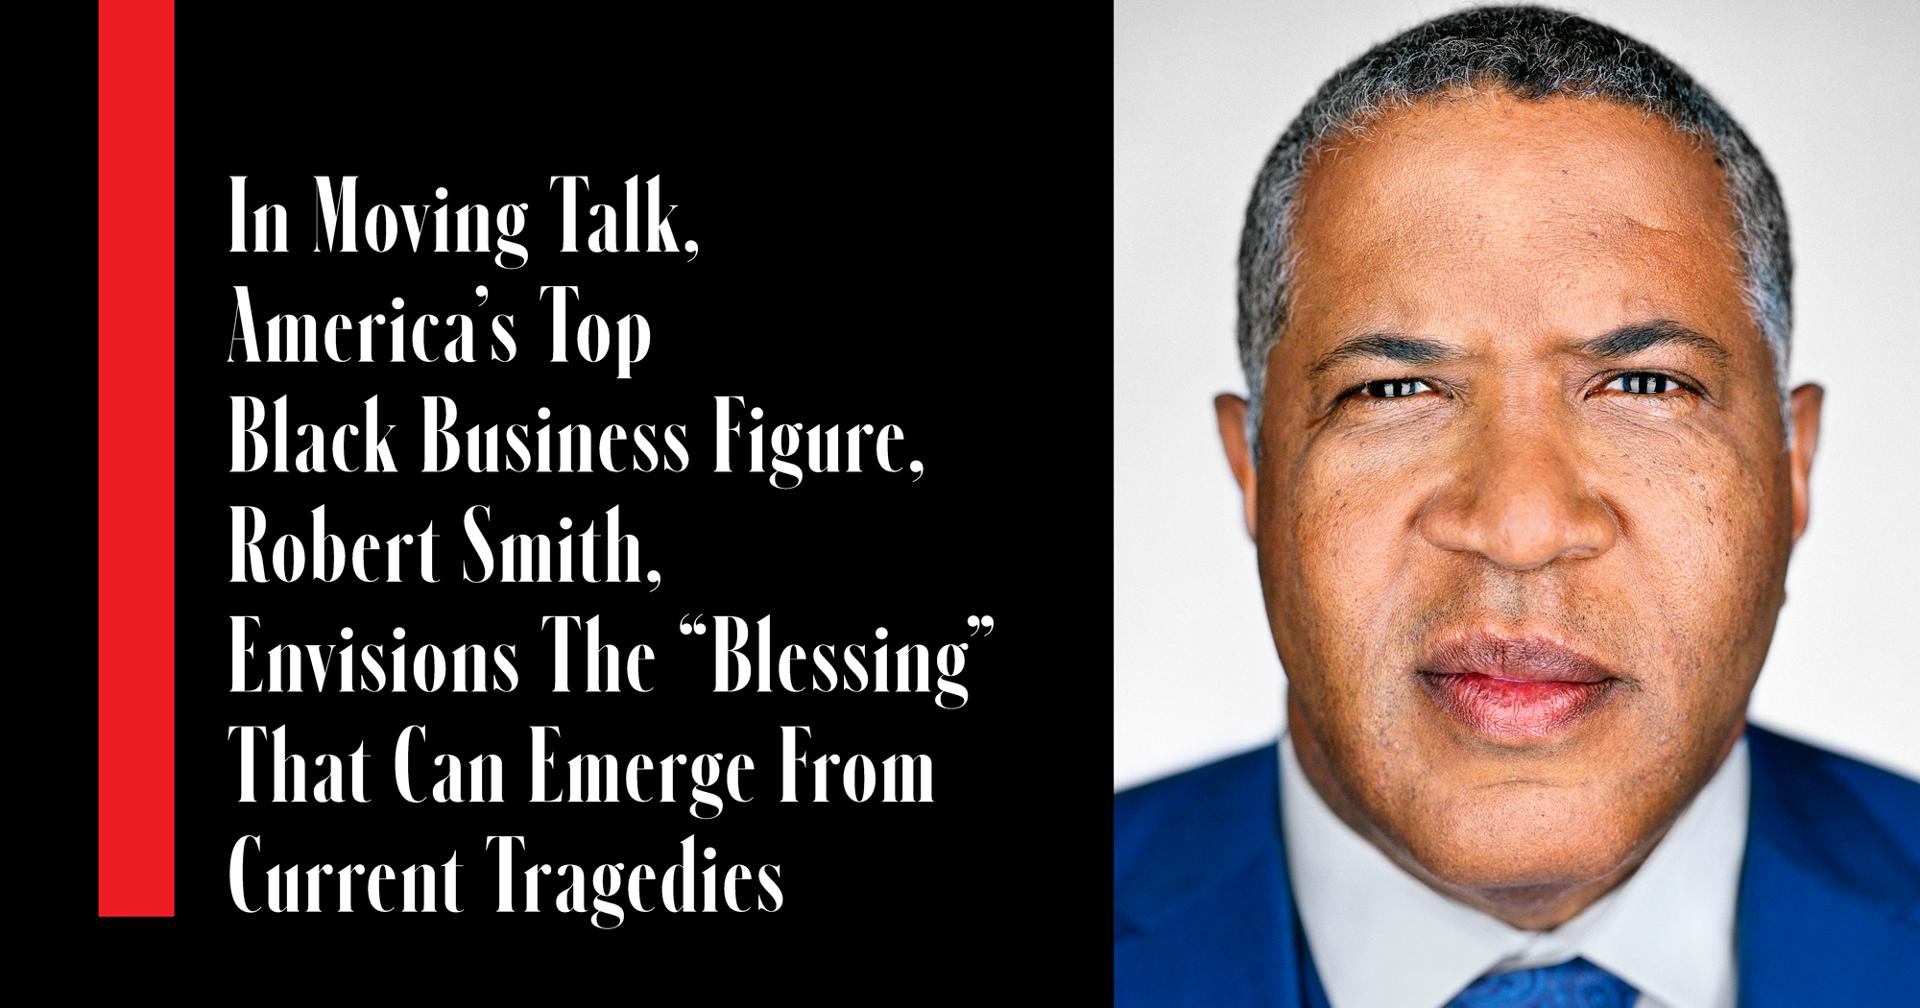 """In Moving Talk, America's Top Black Business Figure, Robert Smith, Envisions The """"Blessing"""" That Can Emerge From Current Tragedies"""